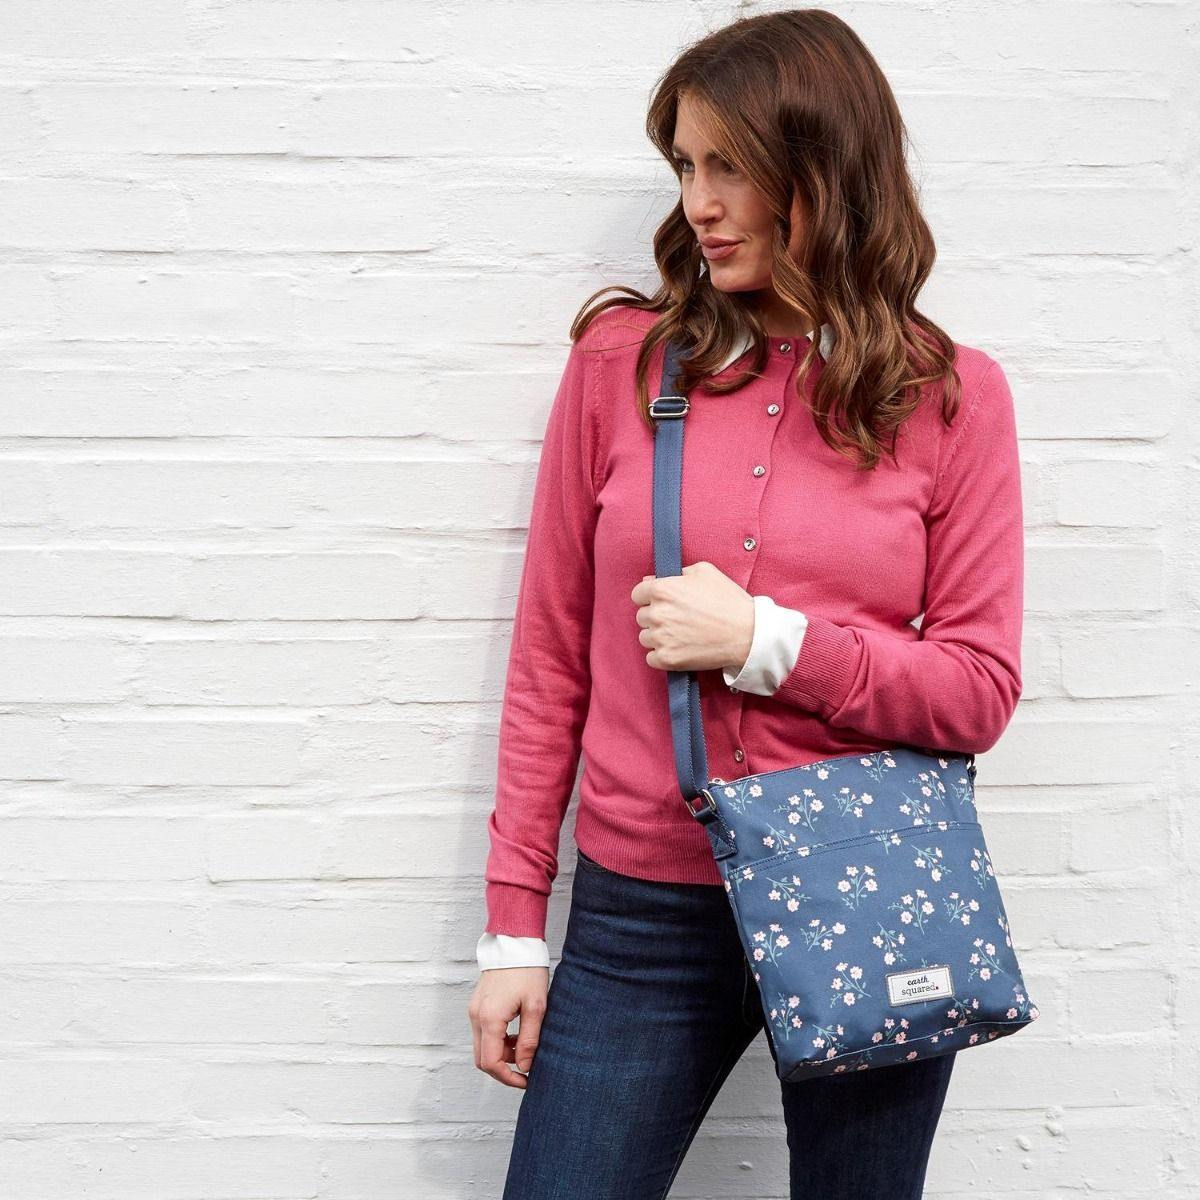 Oil Cloth Messenger Bag Navy Flower, Luggage & Bags by Insideout